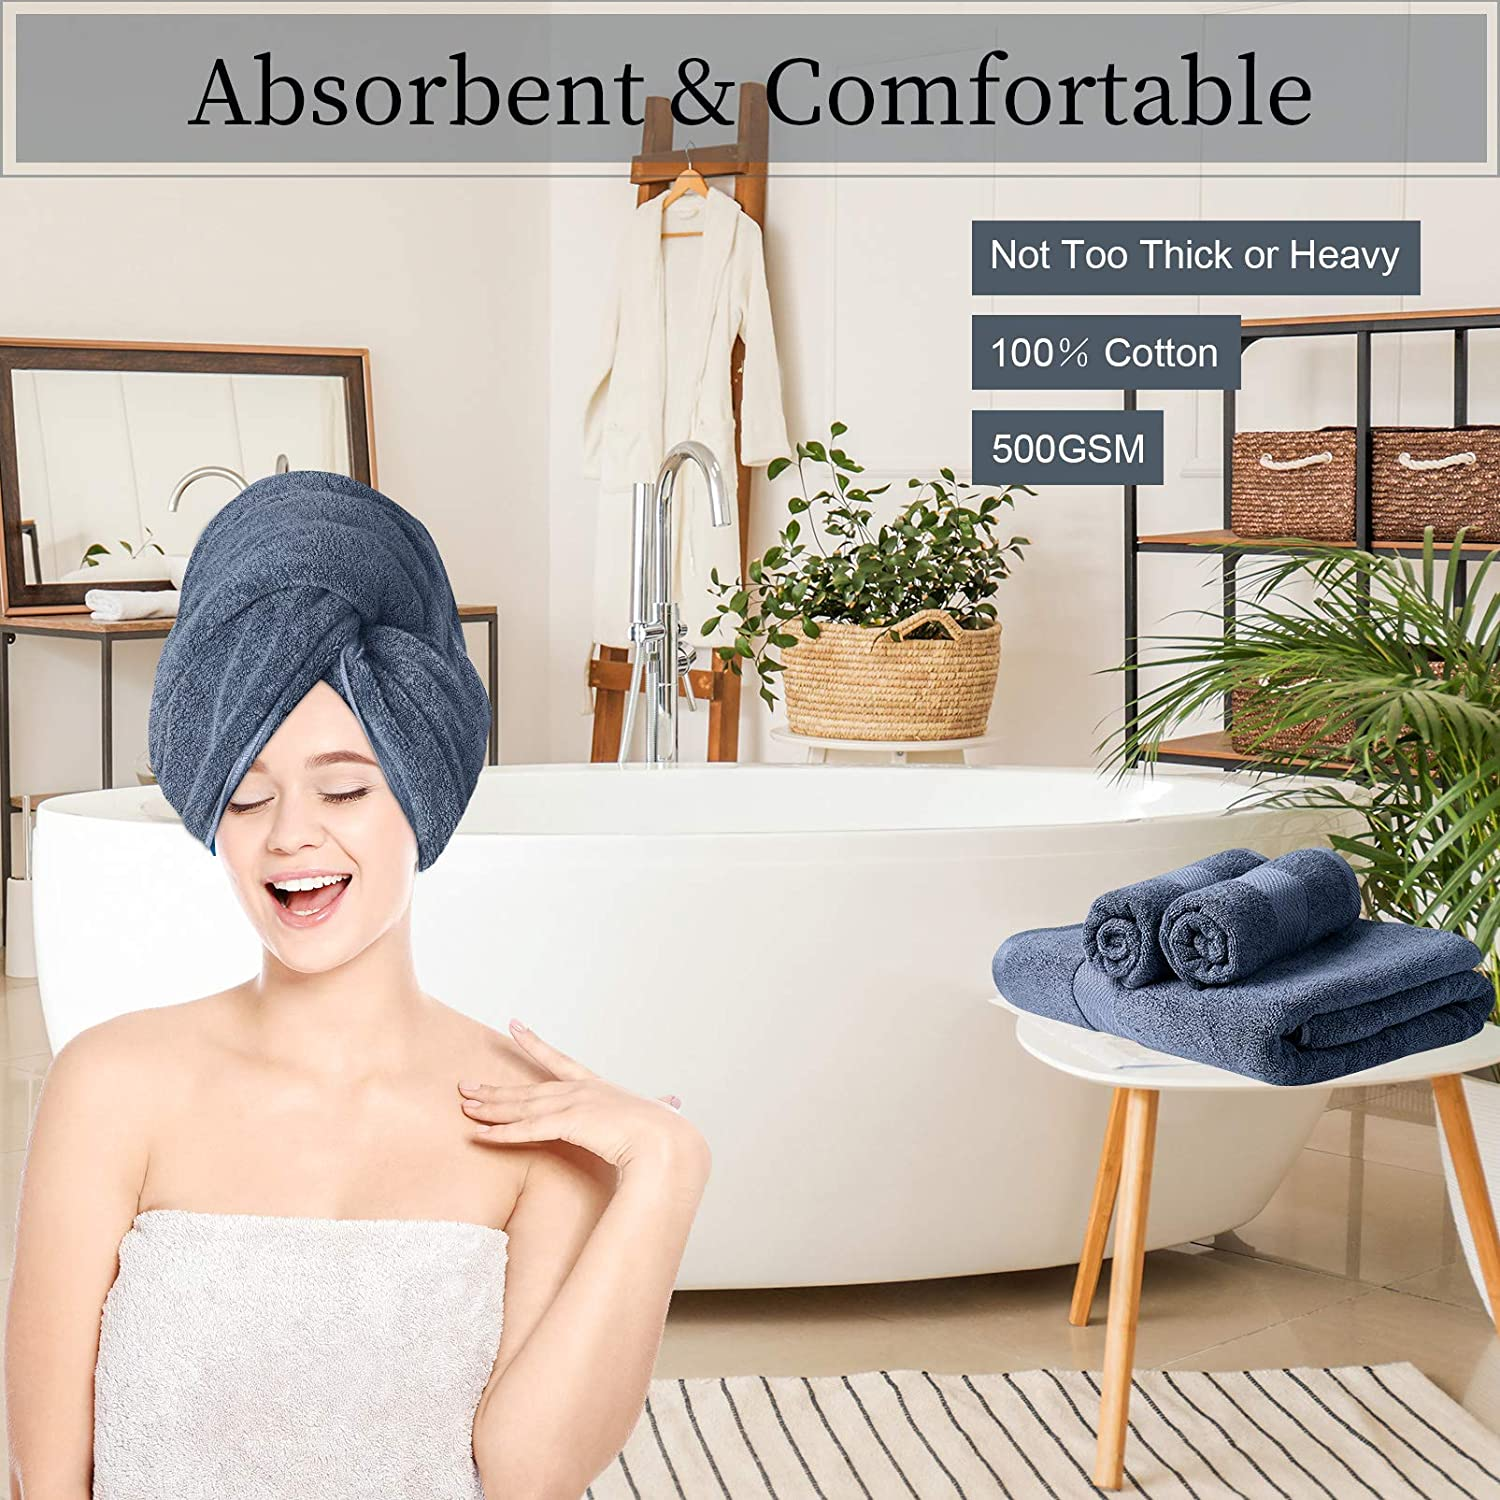 3 Pcs PRETTY SEE 100/% Cotton Bath Towel Set 1 Bath Sheet and 2 Face Towels Quick Dry Absorbent Hand Towels for Daily Use